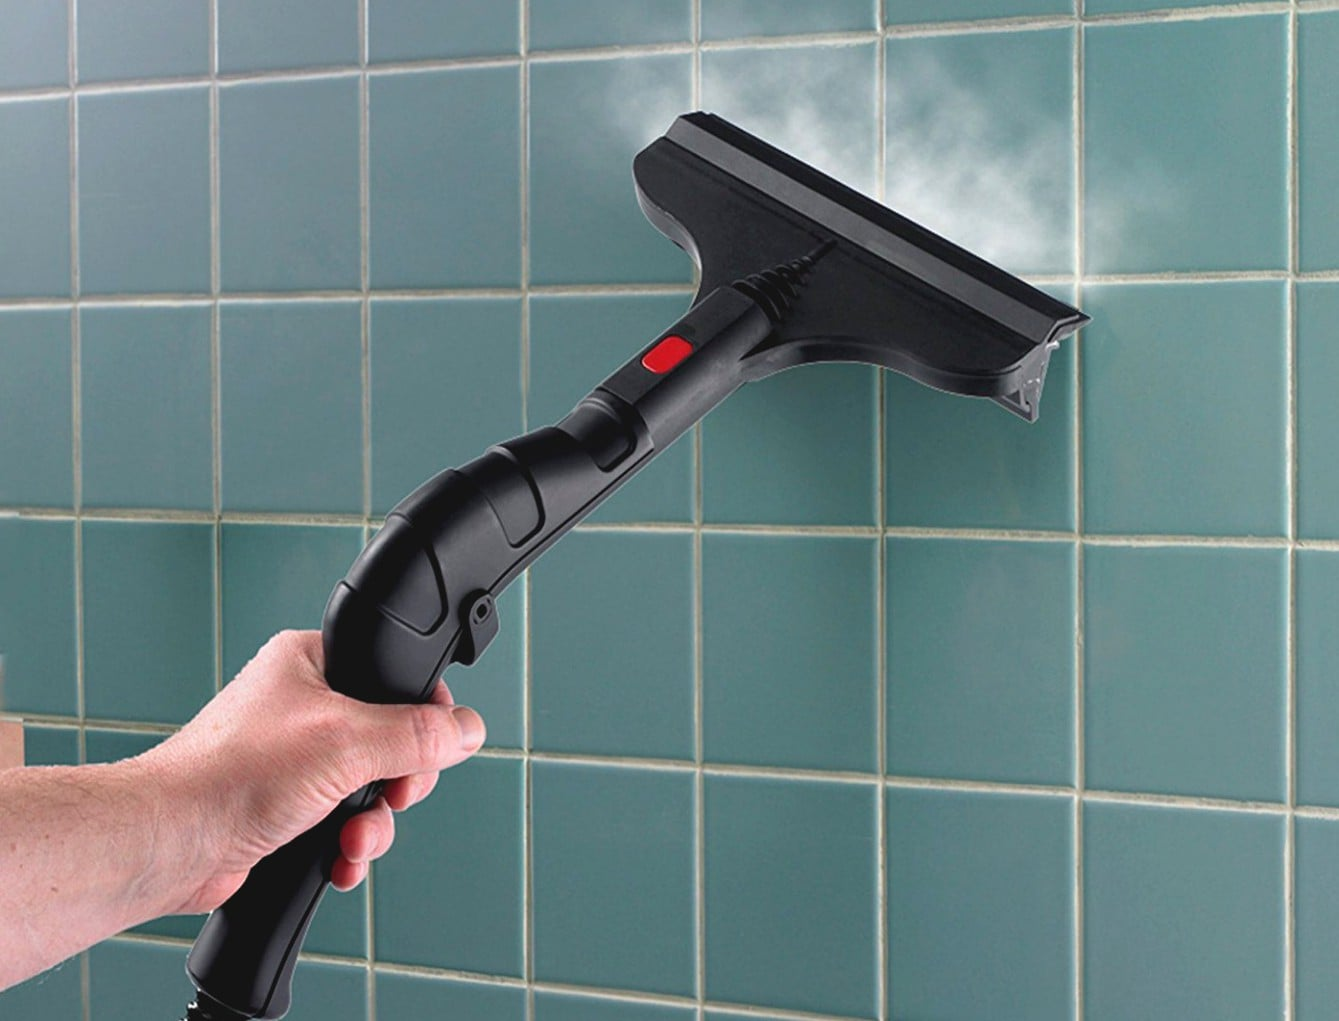 5 Best Steam Cleaner For Tile Floors And Grout Review 2018 Ing Guide Pickthevacuum